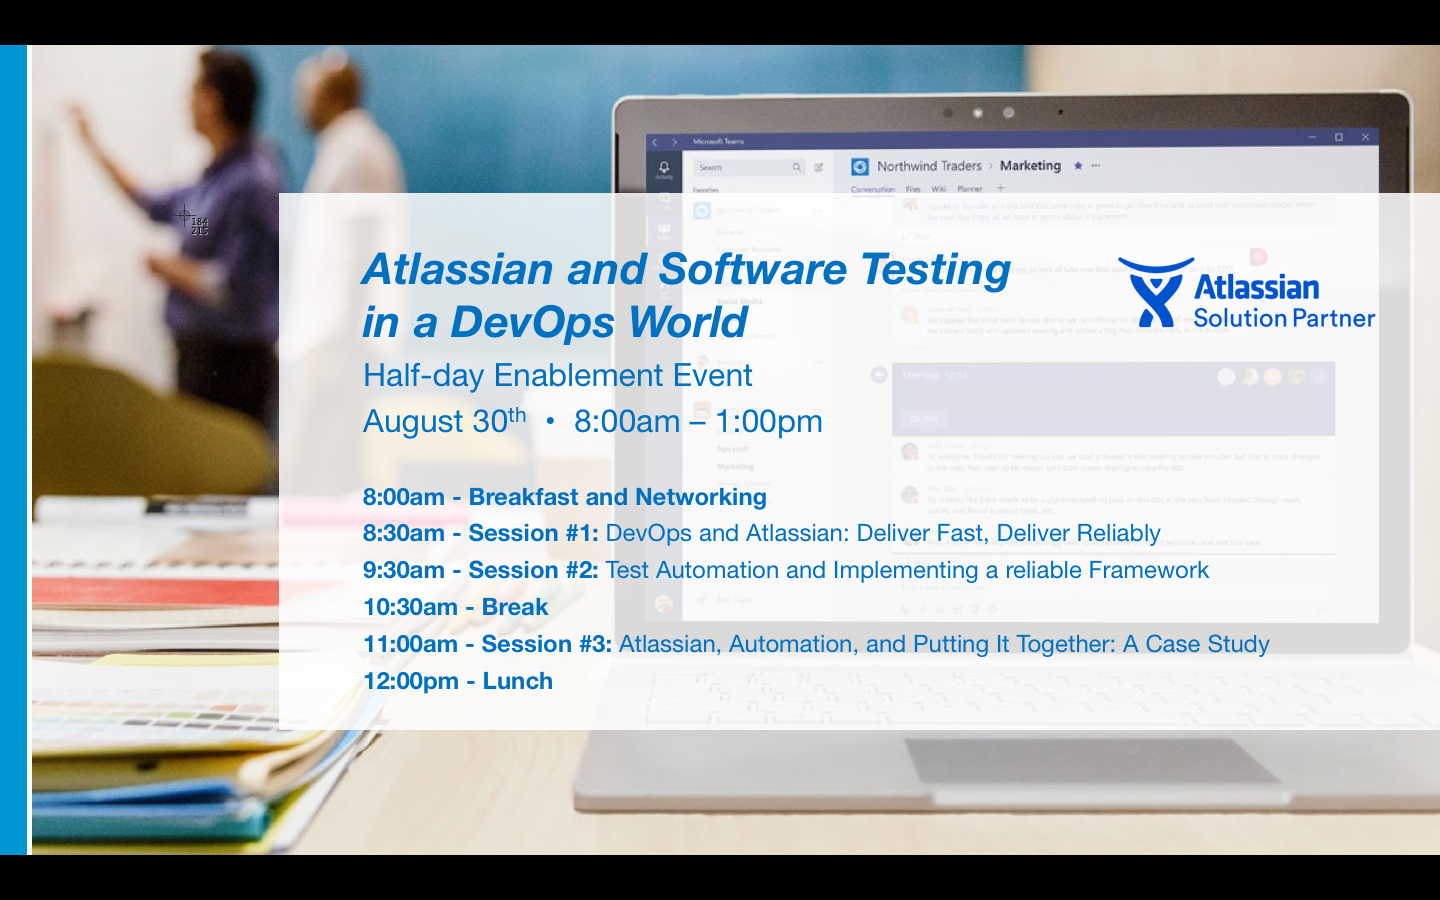 Atlassian and Software Testing in a DevOps World